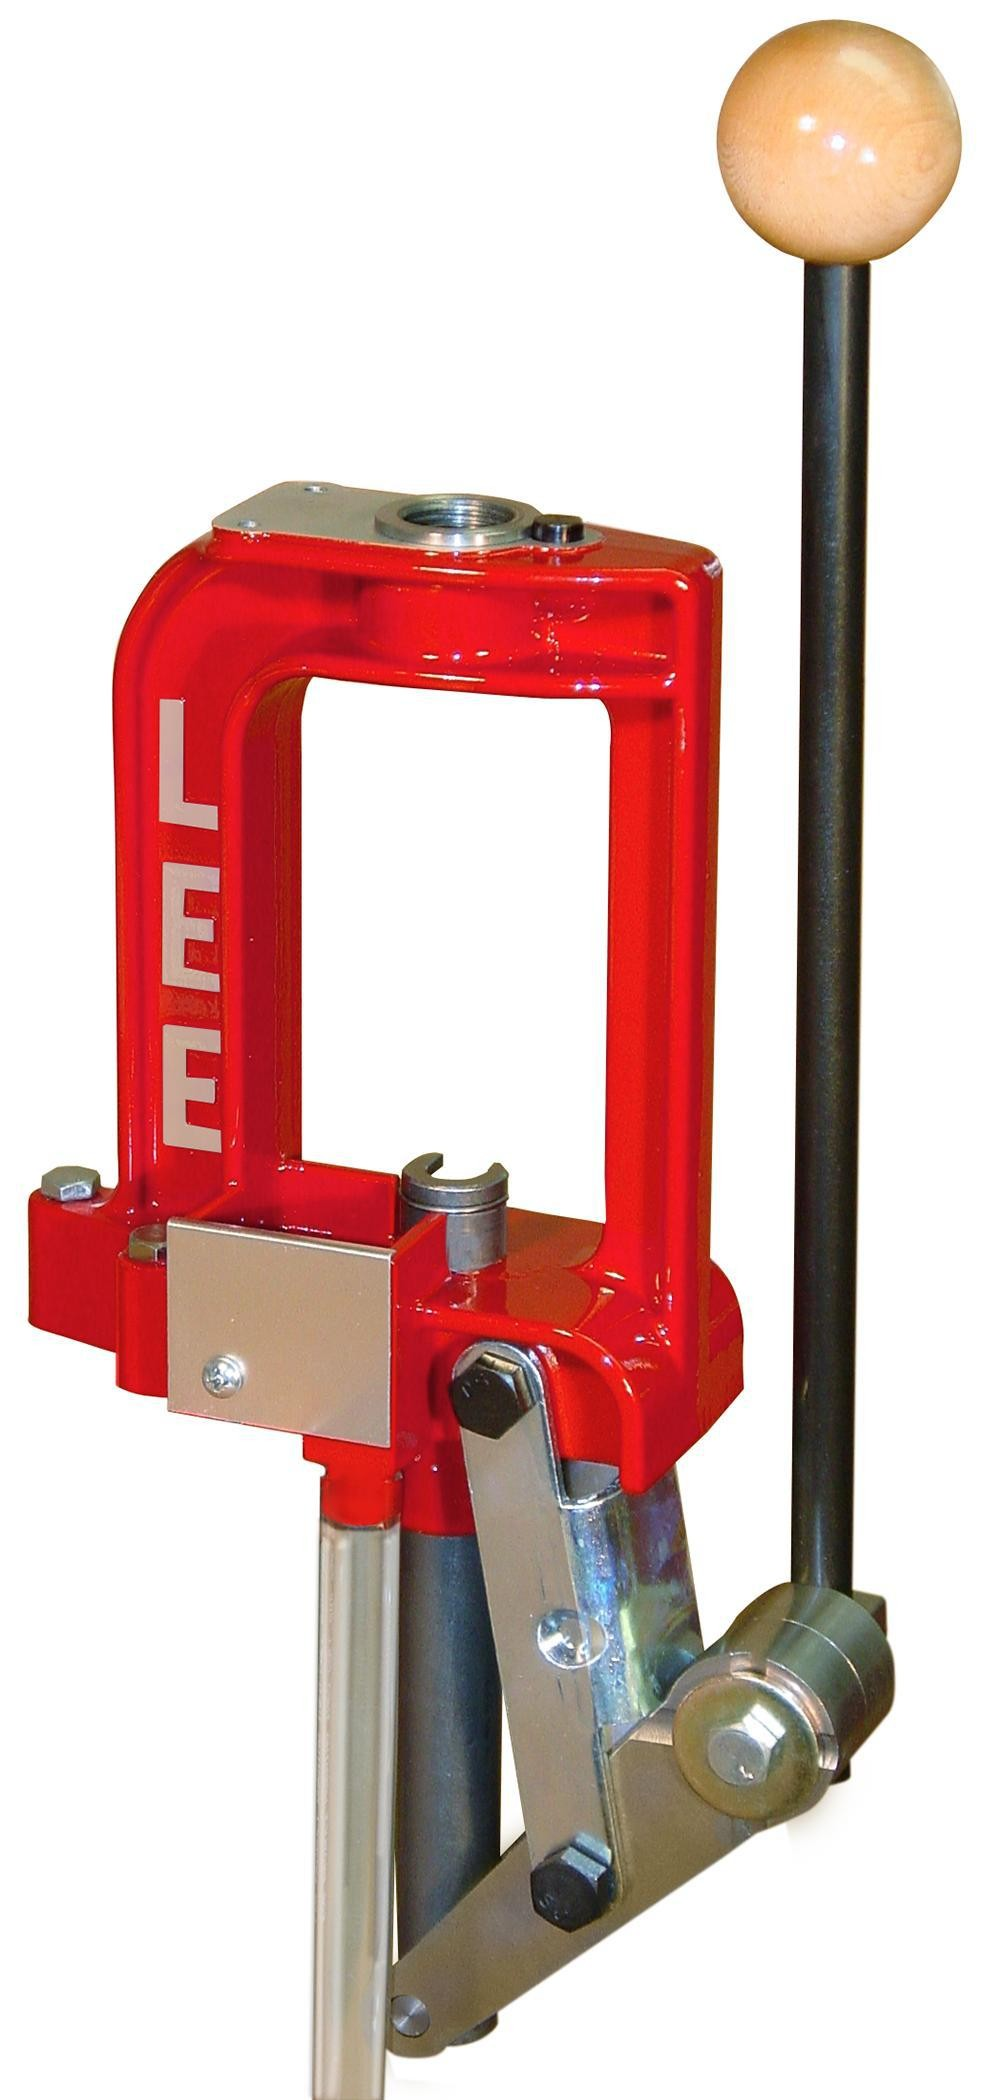 Lee Challenger Breech Lock Single Stage Press